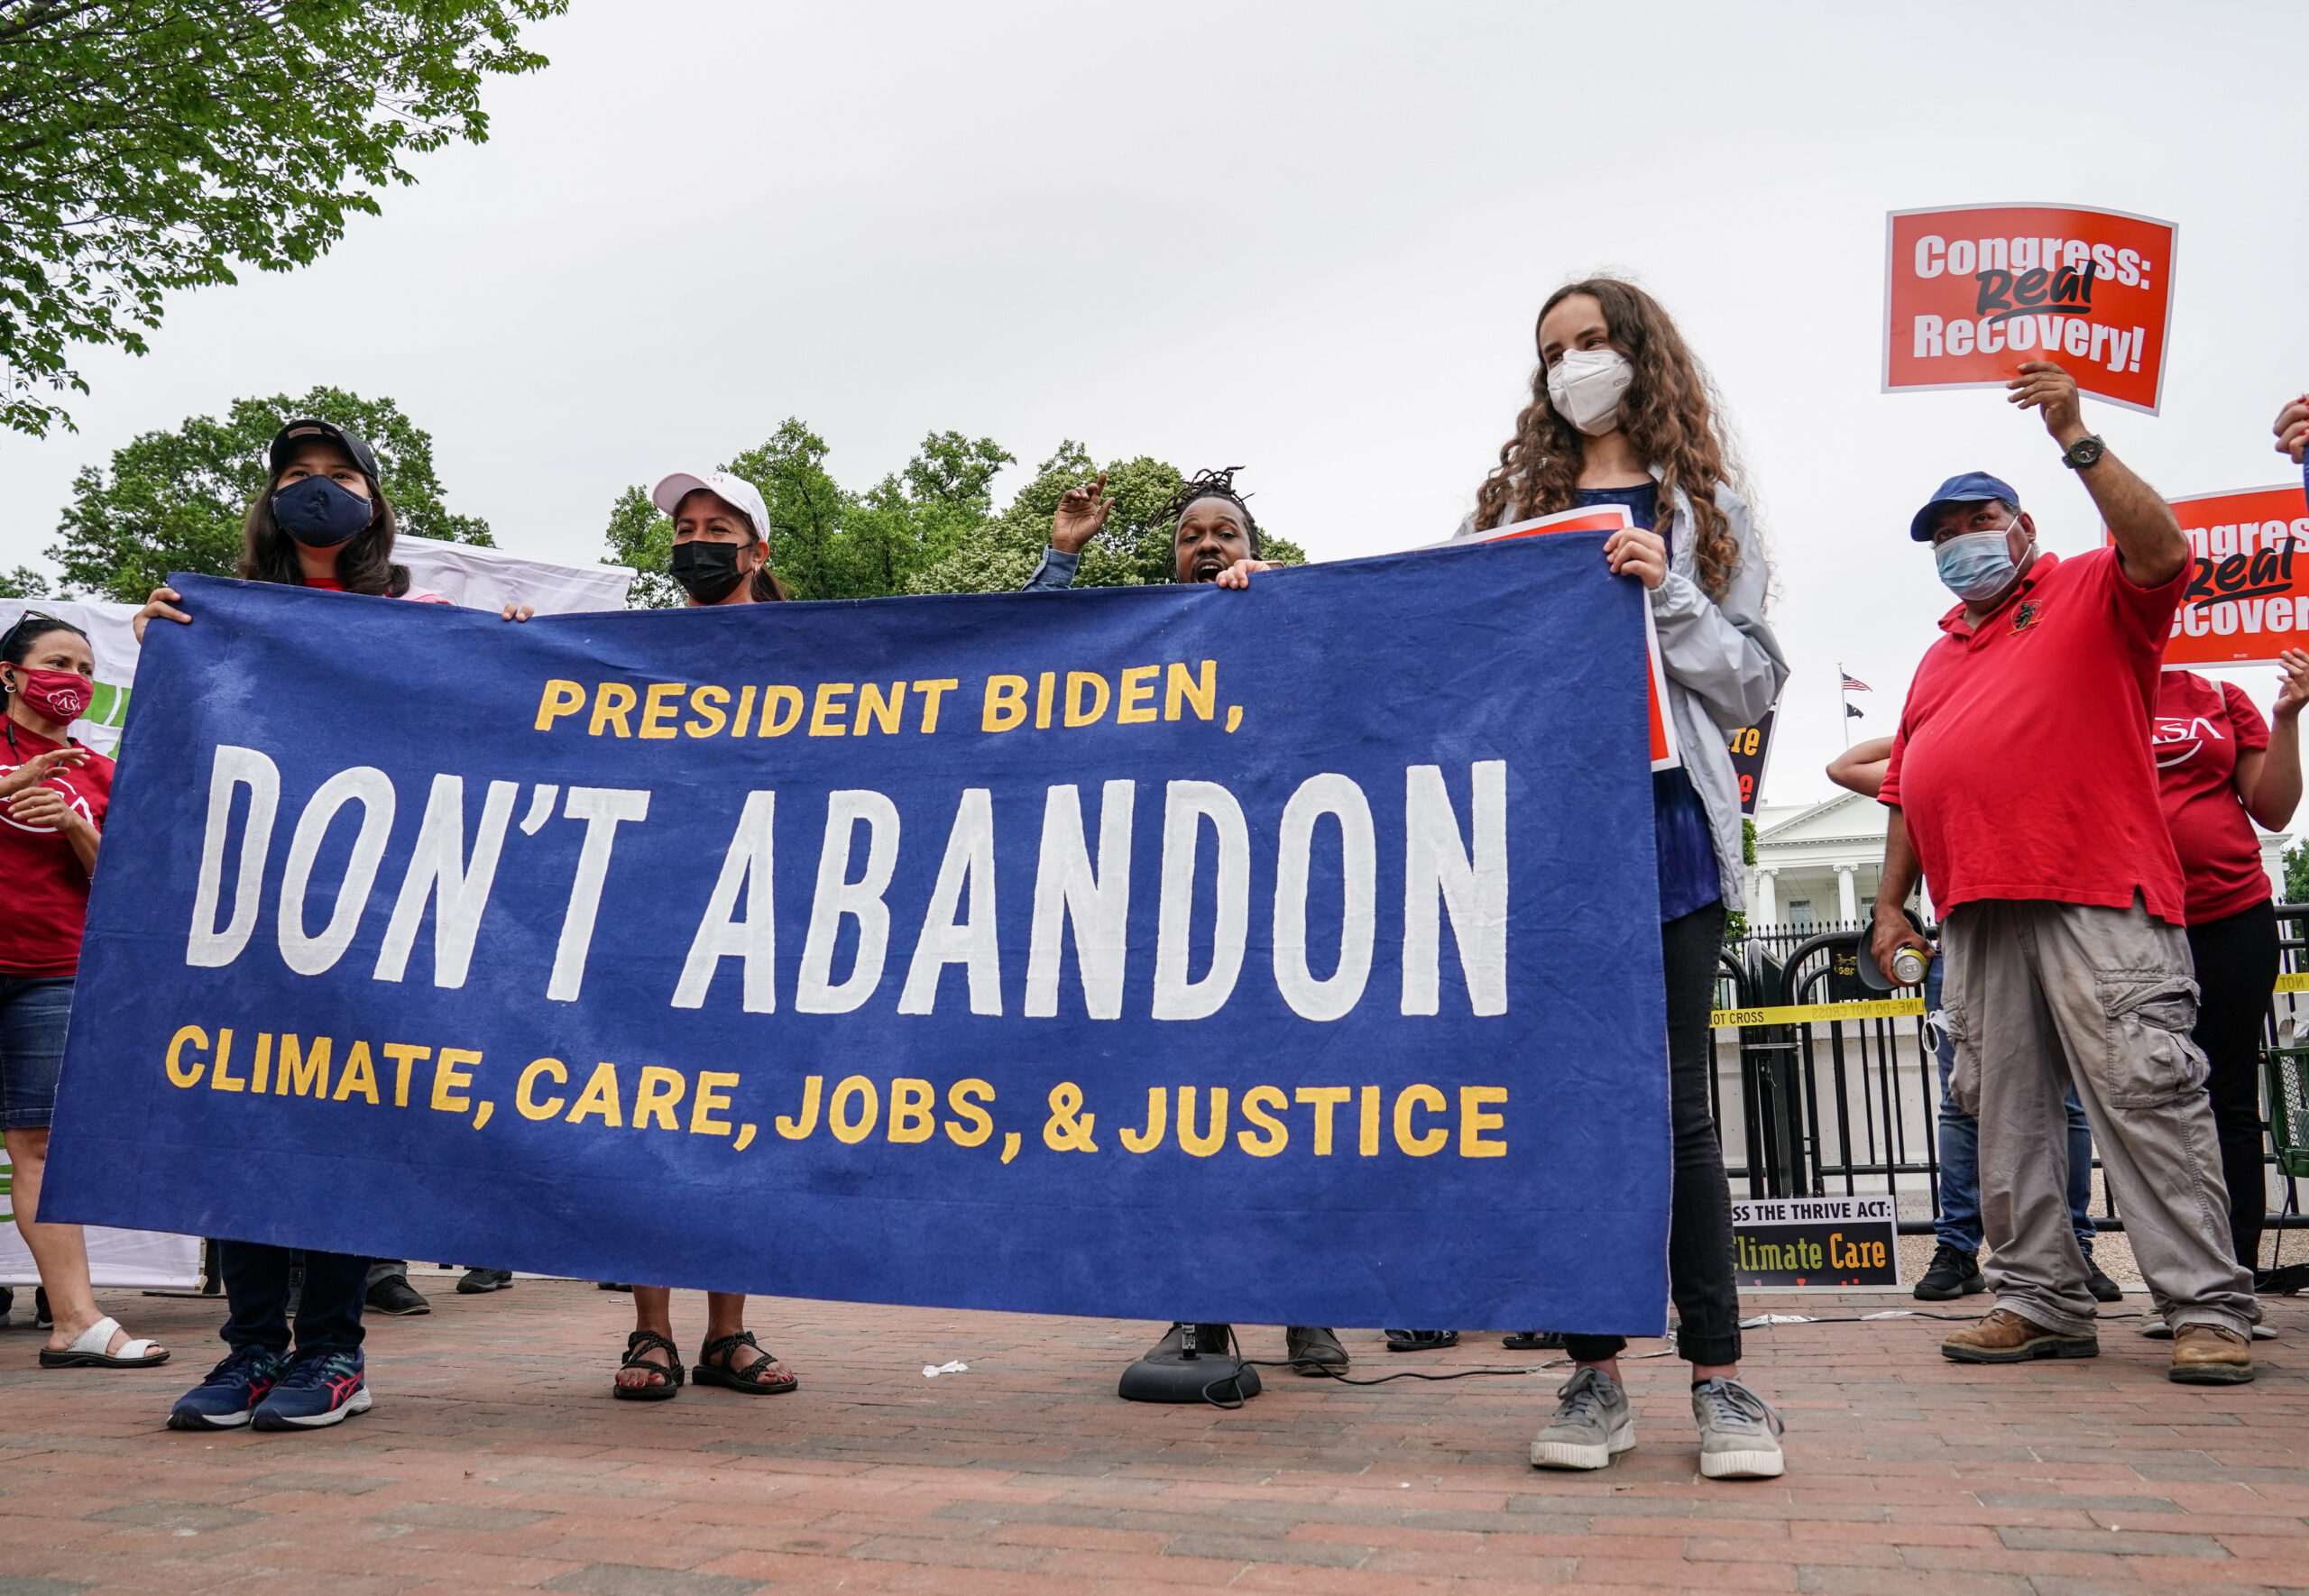 Activists gathered outside the White House in May to demand that President Joe Biden refuse to compromise on election promises regarding climate change and social justice. (Credit: Jemal Countess/Getty Images for Green New Deal Network)